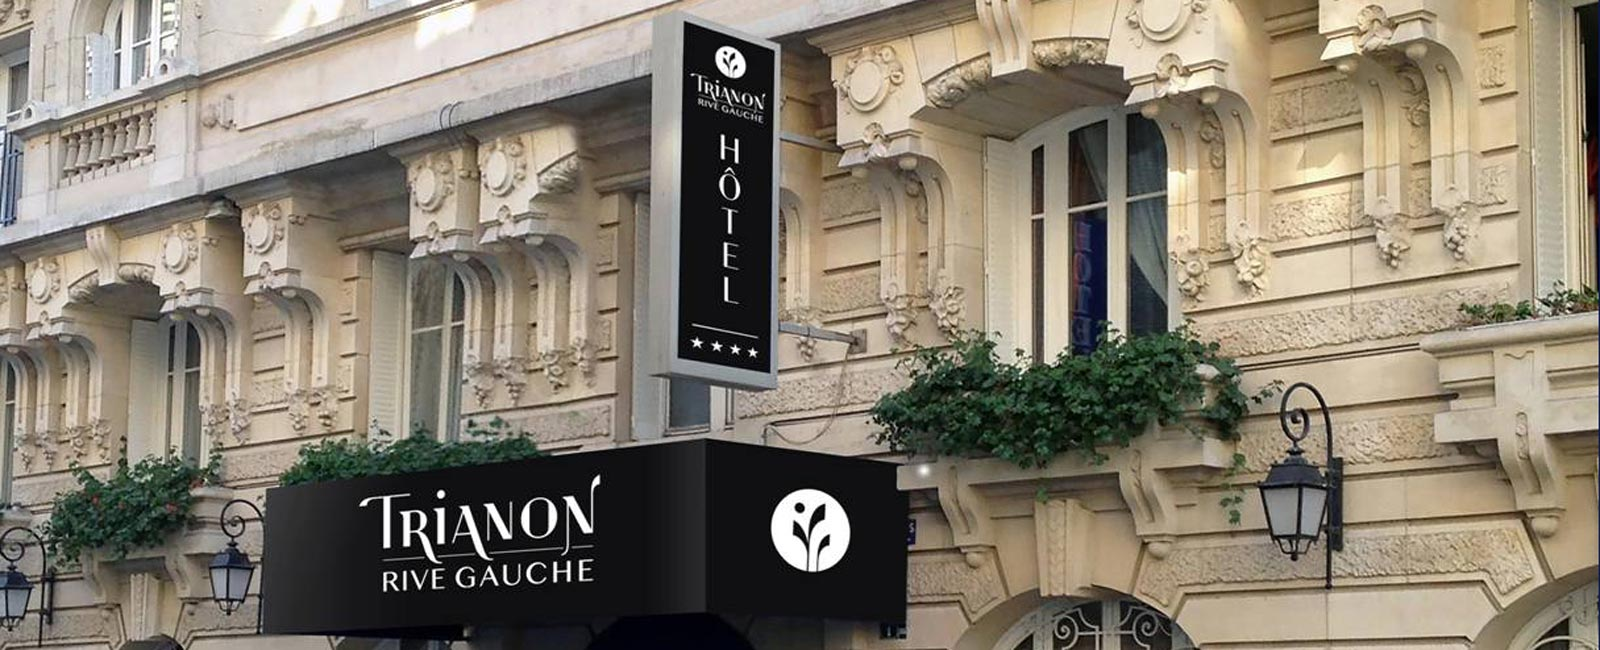 h tel trianon rive gauche paris centre business r unions. Black Bedroom Furniture Sets. Home Design Ideas